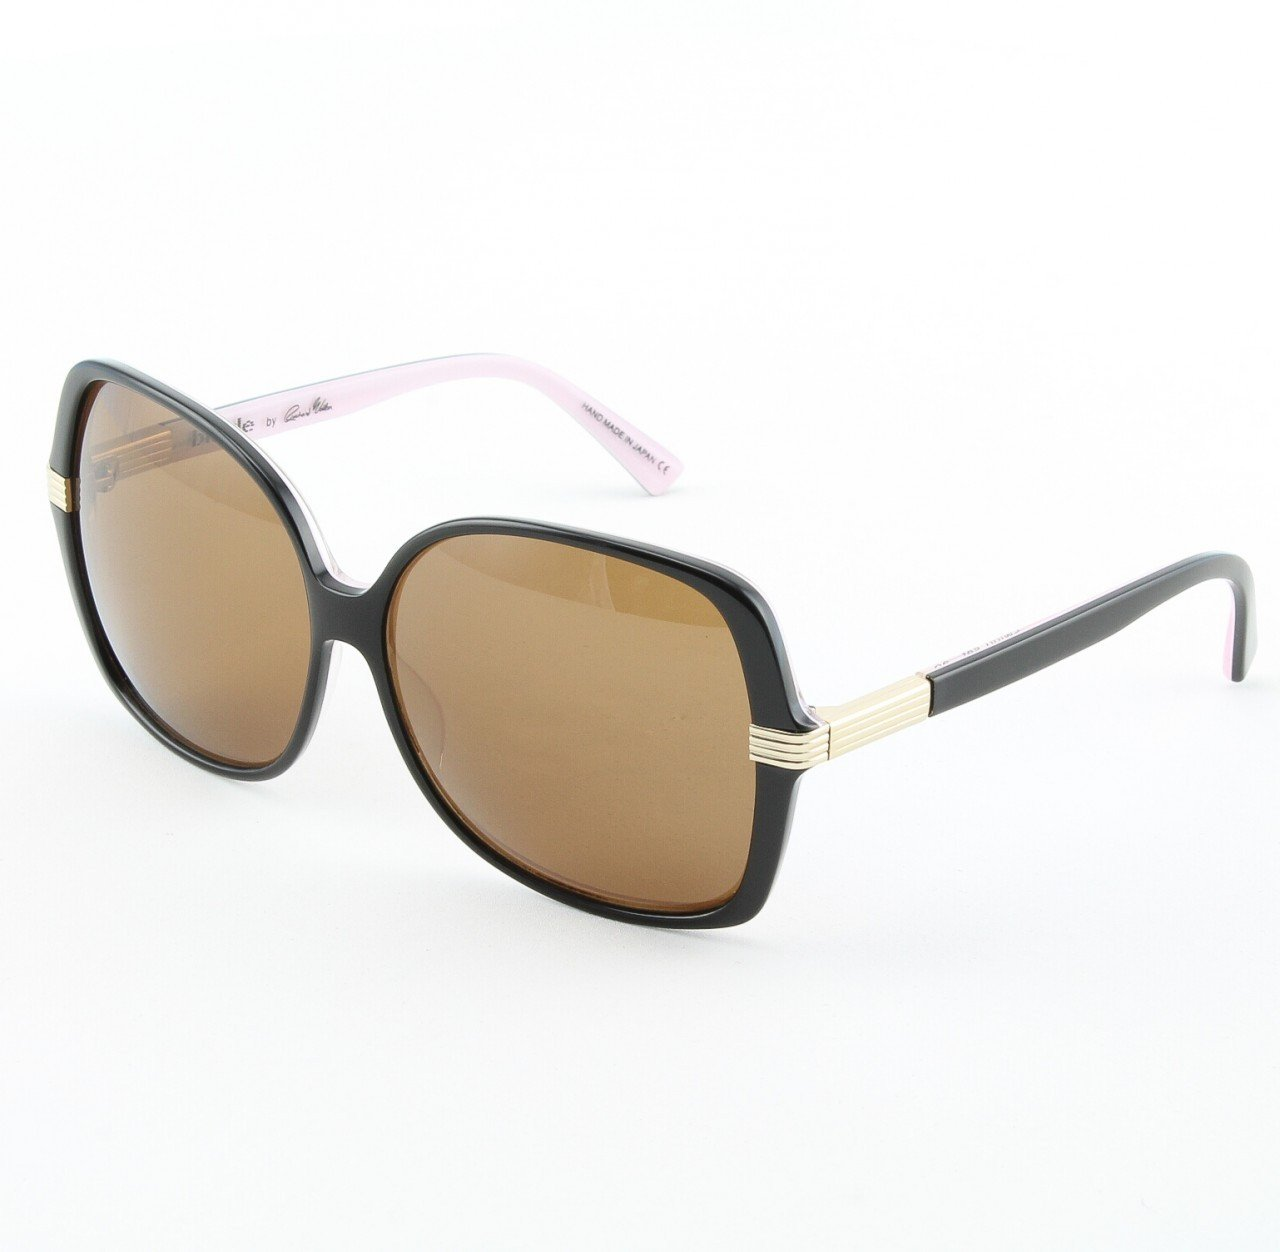 Blinde Swing Set Women's Sunglasses Col. Almost Oreo Black with Brown Lenses